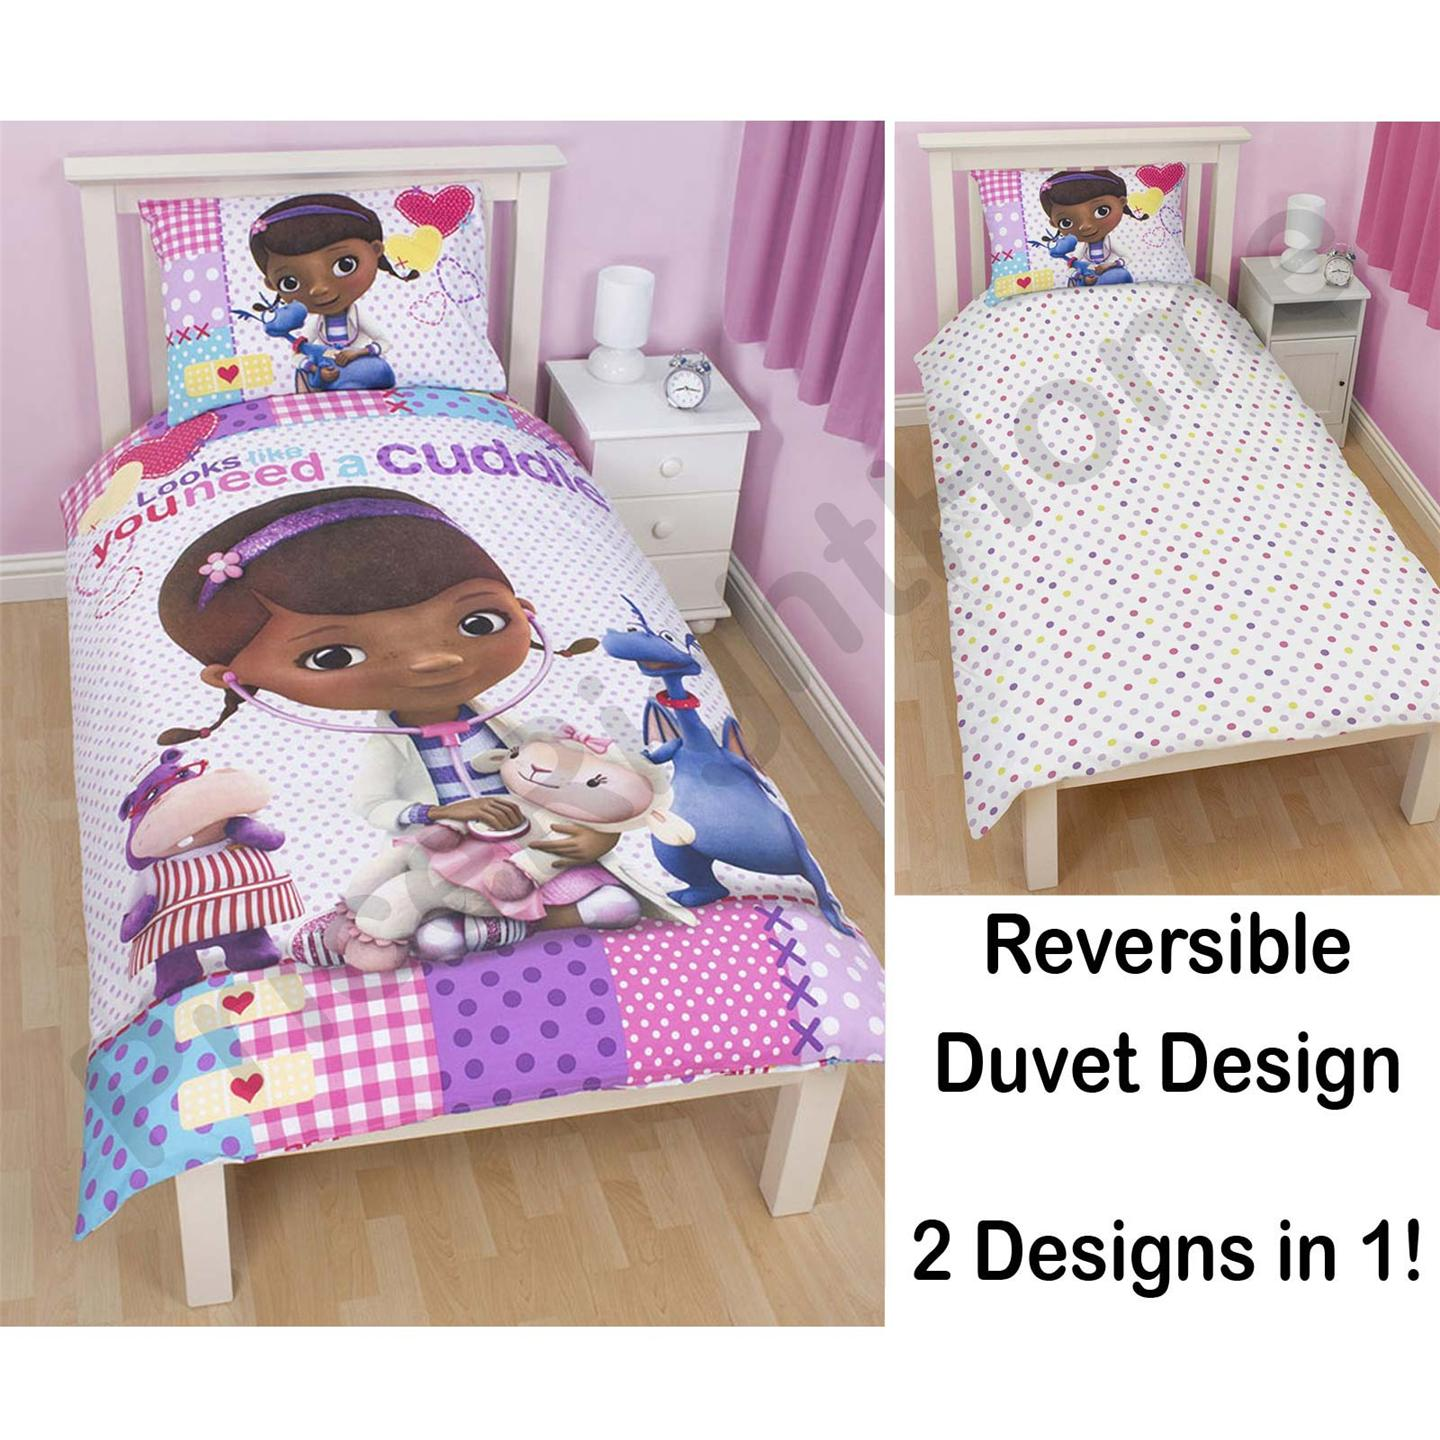 doc mcstuffins upholstered chair uk peacock wicker for sale 39patch 39 duvet cover official new disney